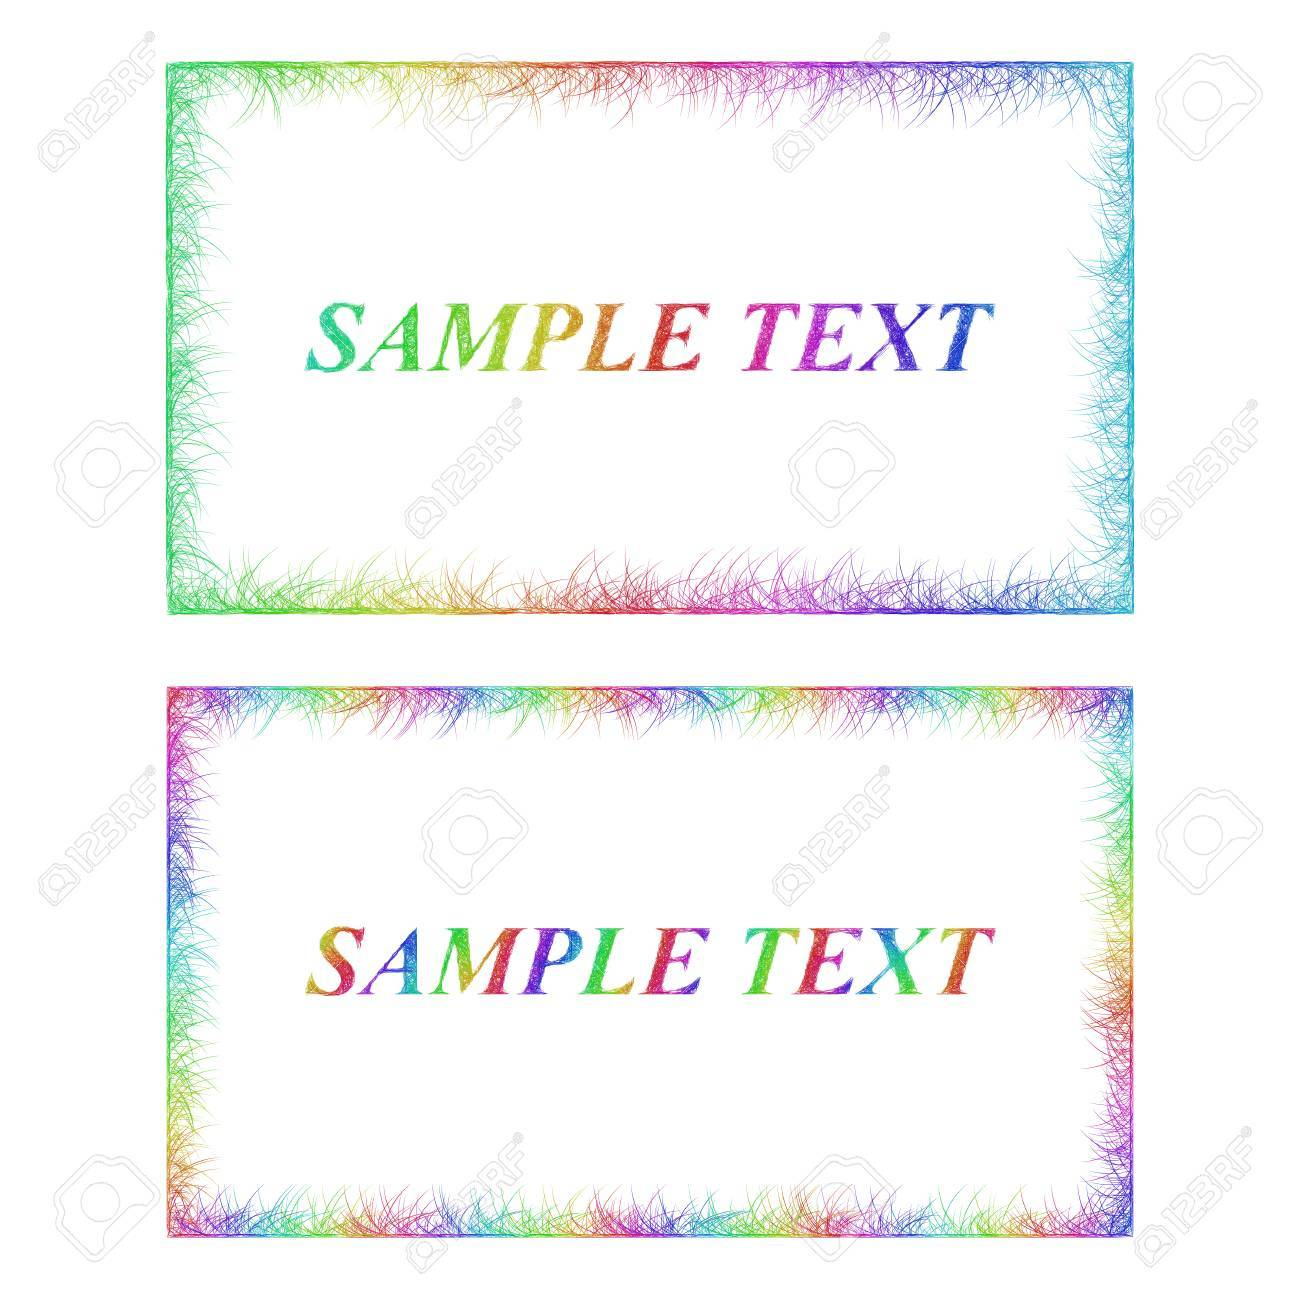 Sketch Business Card Border Templates In Happy Rainbow Colors